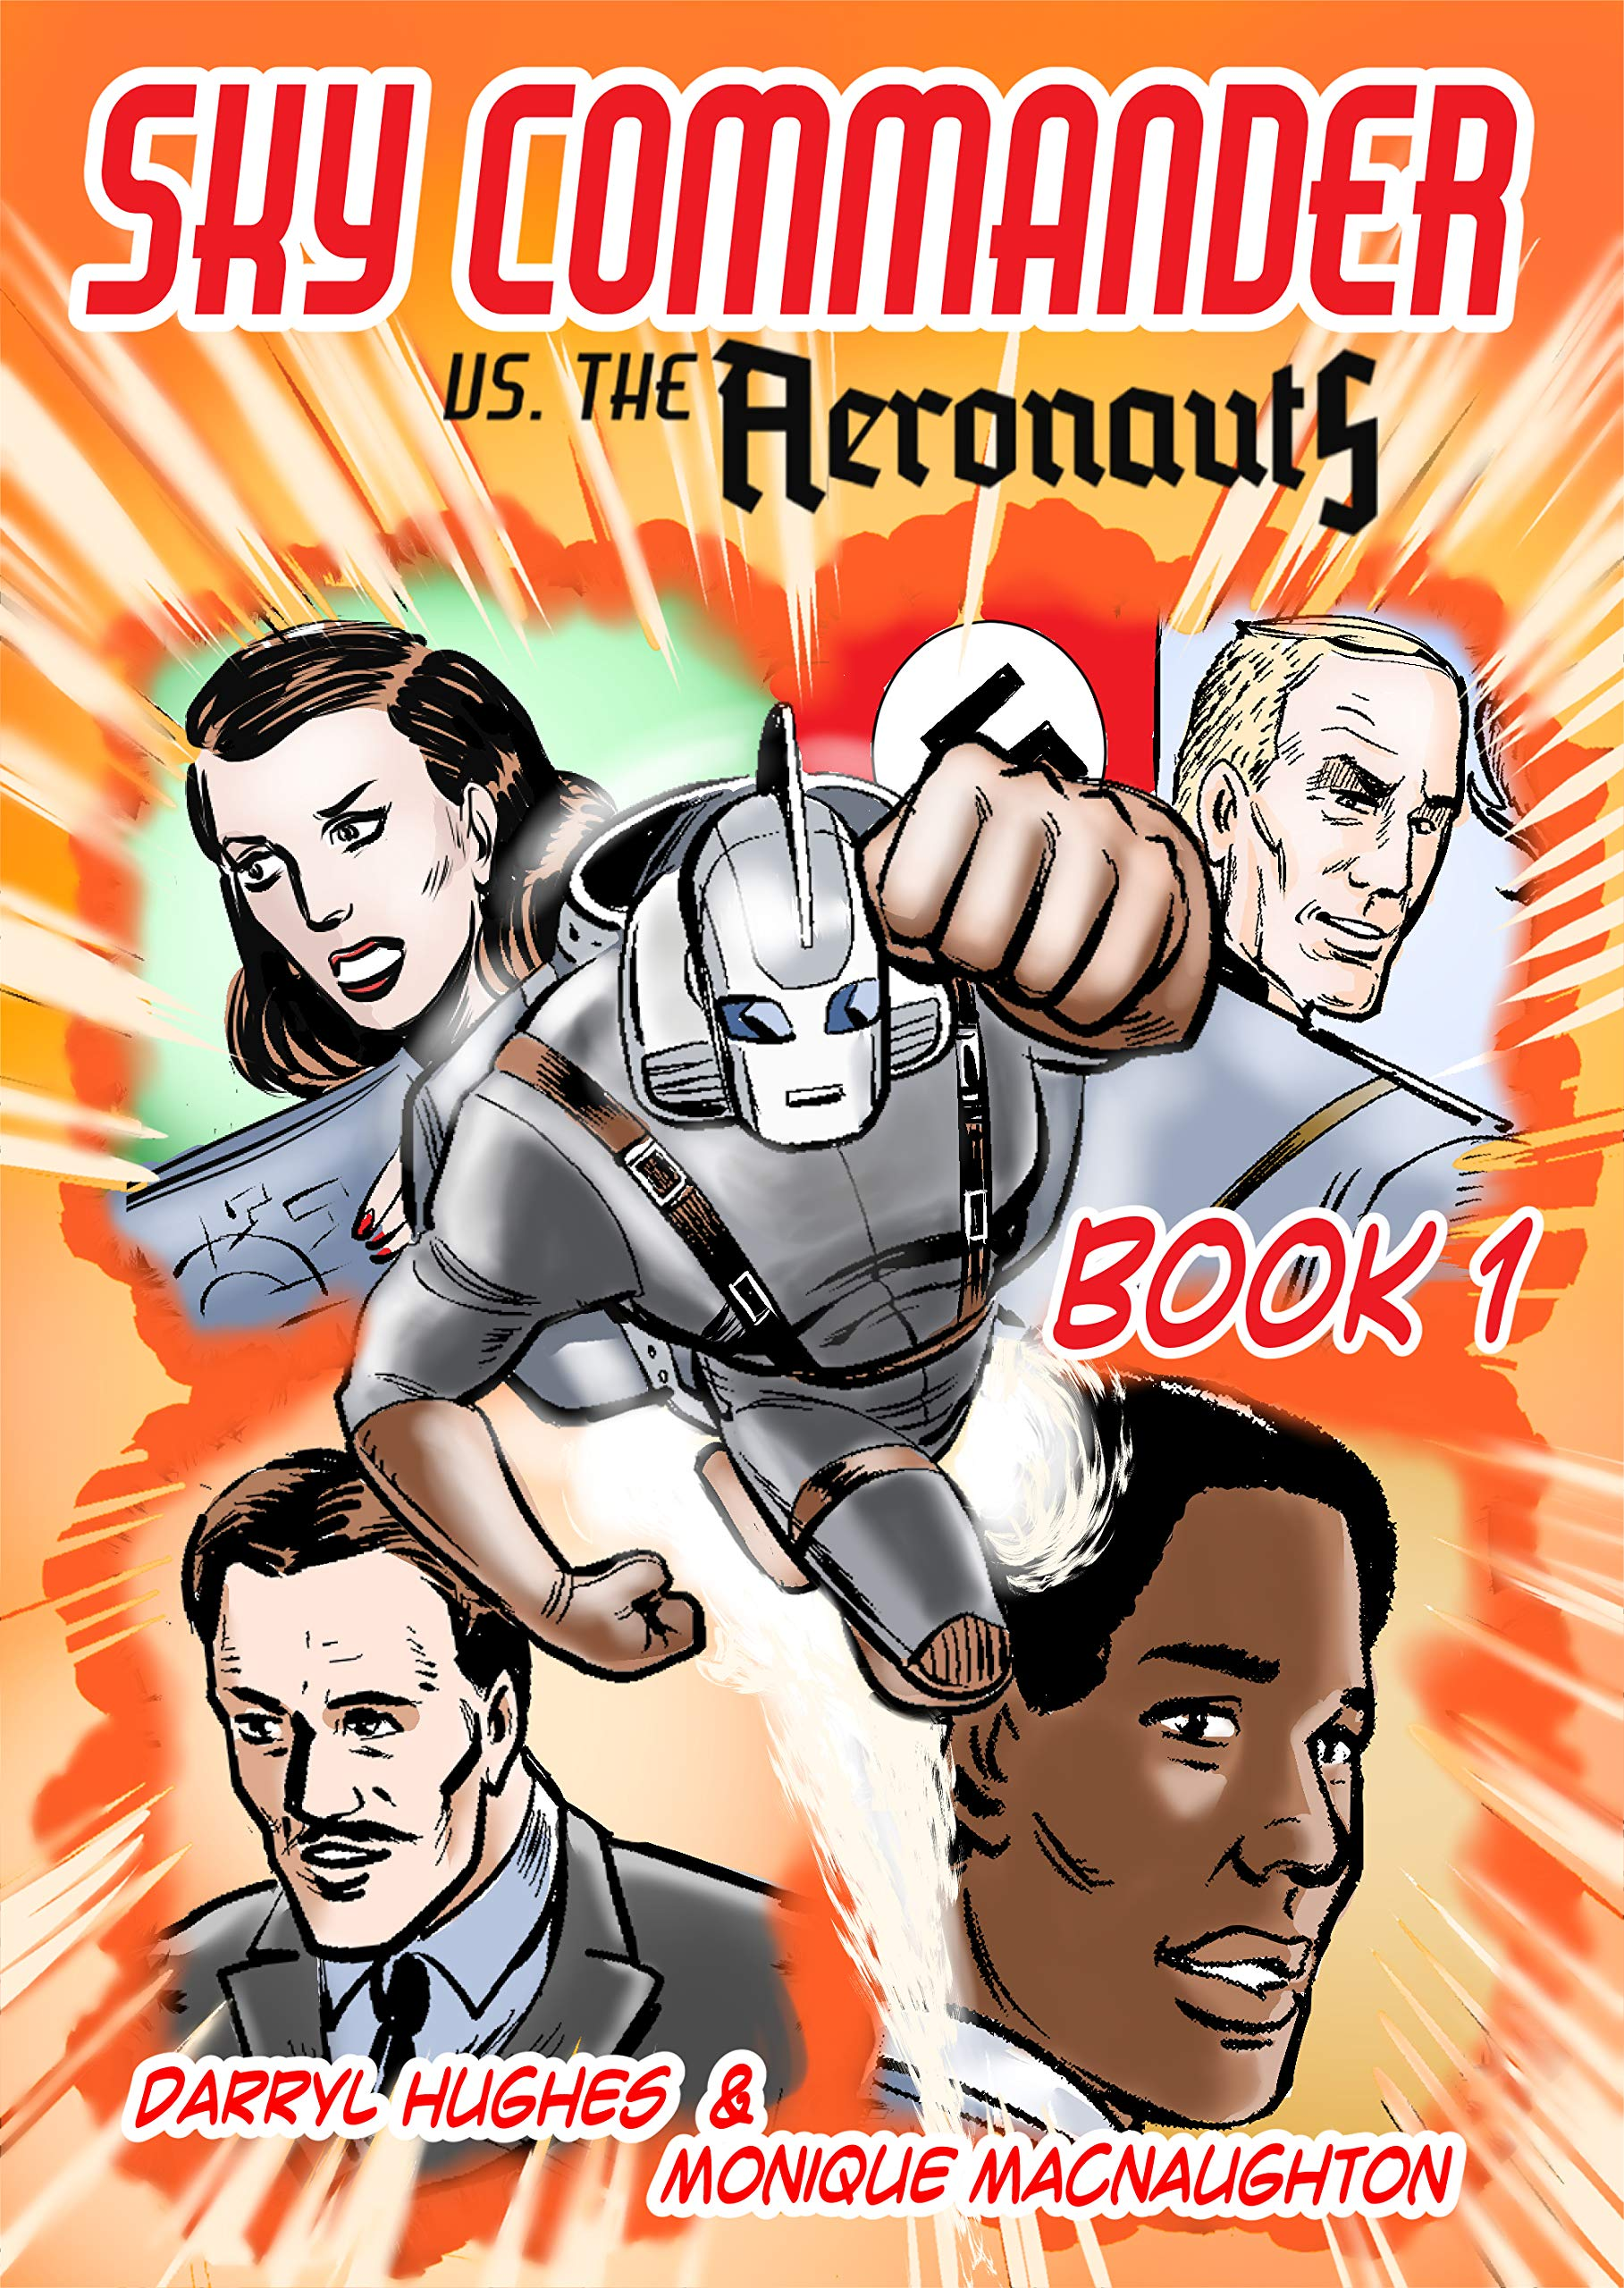 Sky Commander vs The Aeronauts: Book One (Graphic Novel. An exciting WW2 pulp action adventure thriller books)